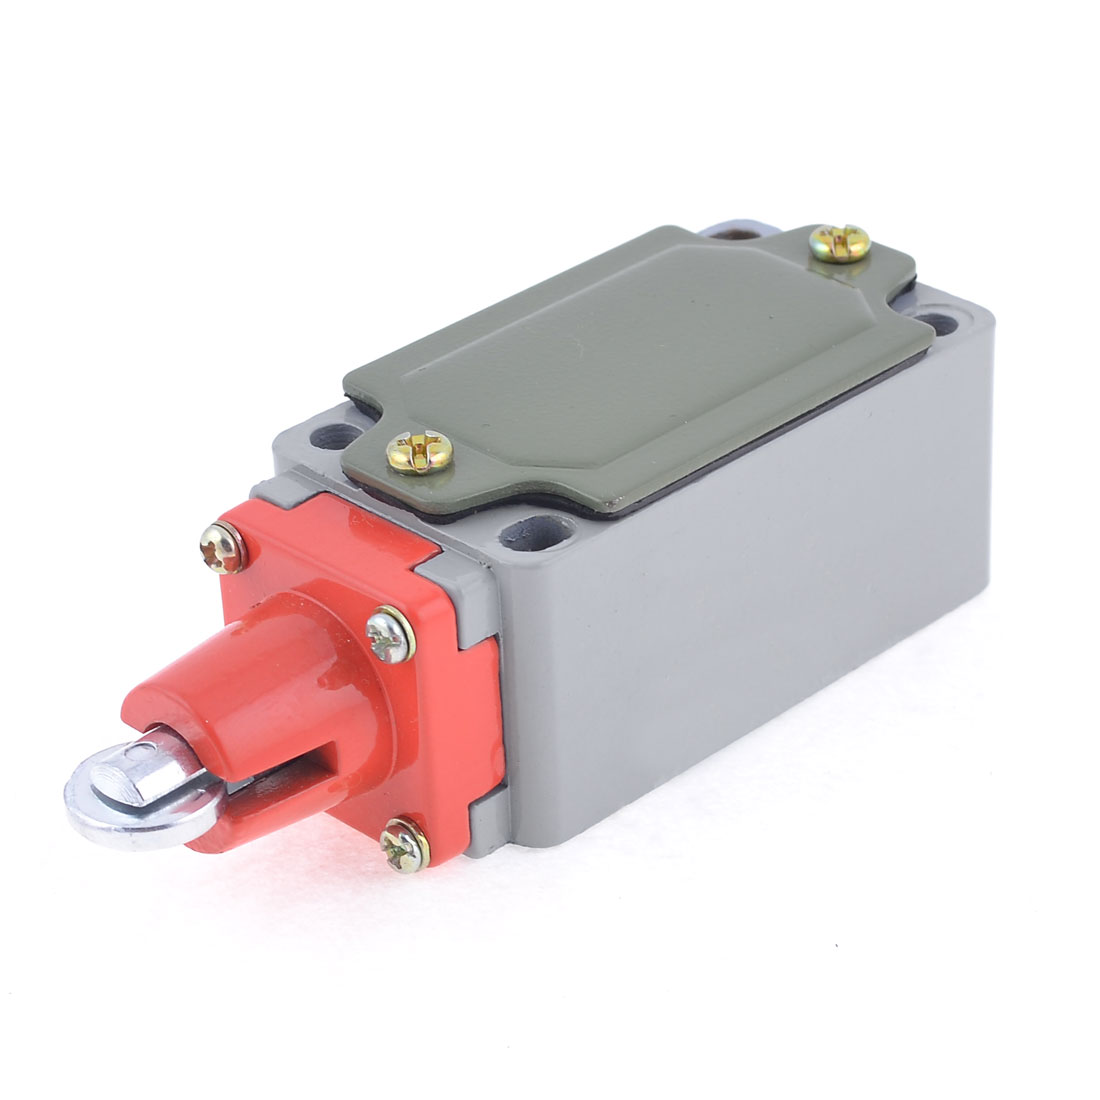 AC 380V 0.8A DC 220V 0.15A Plunger Compact Enclosed Limit Switch